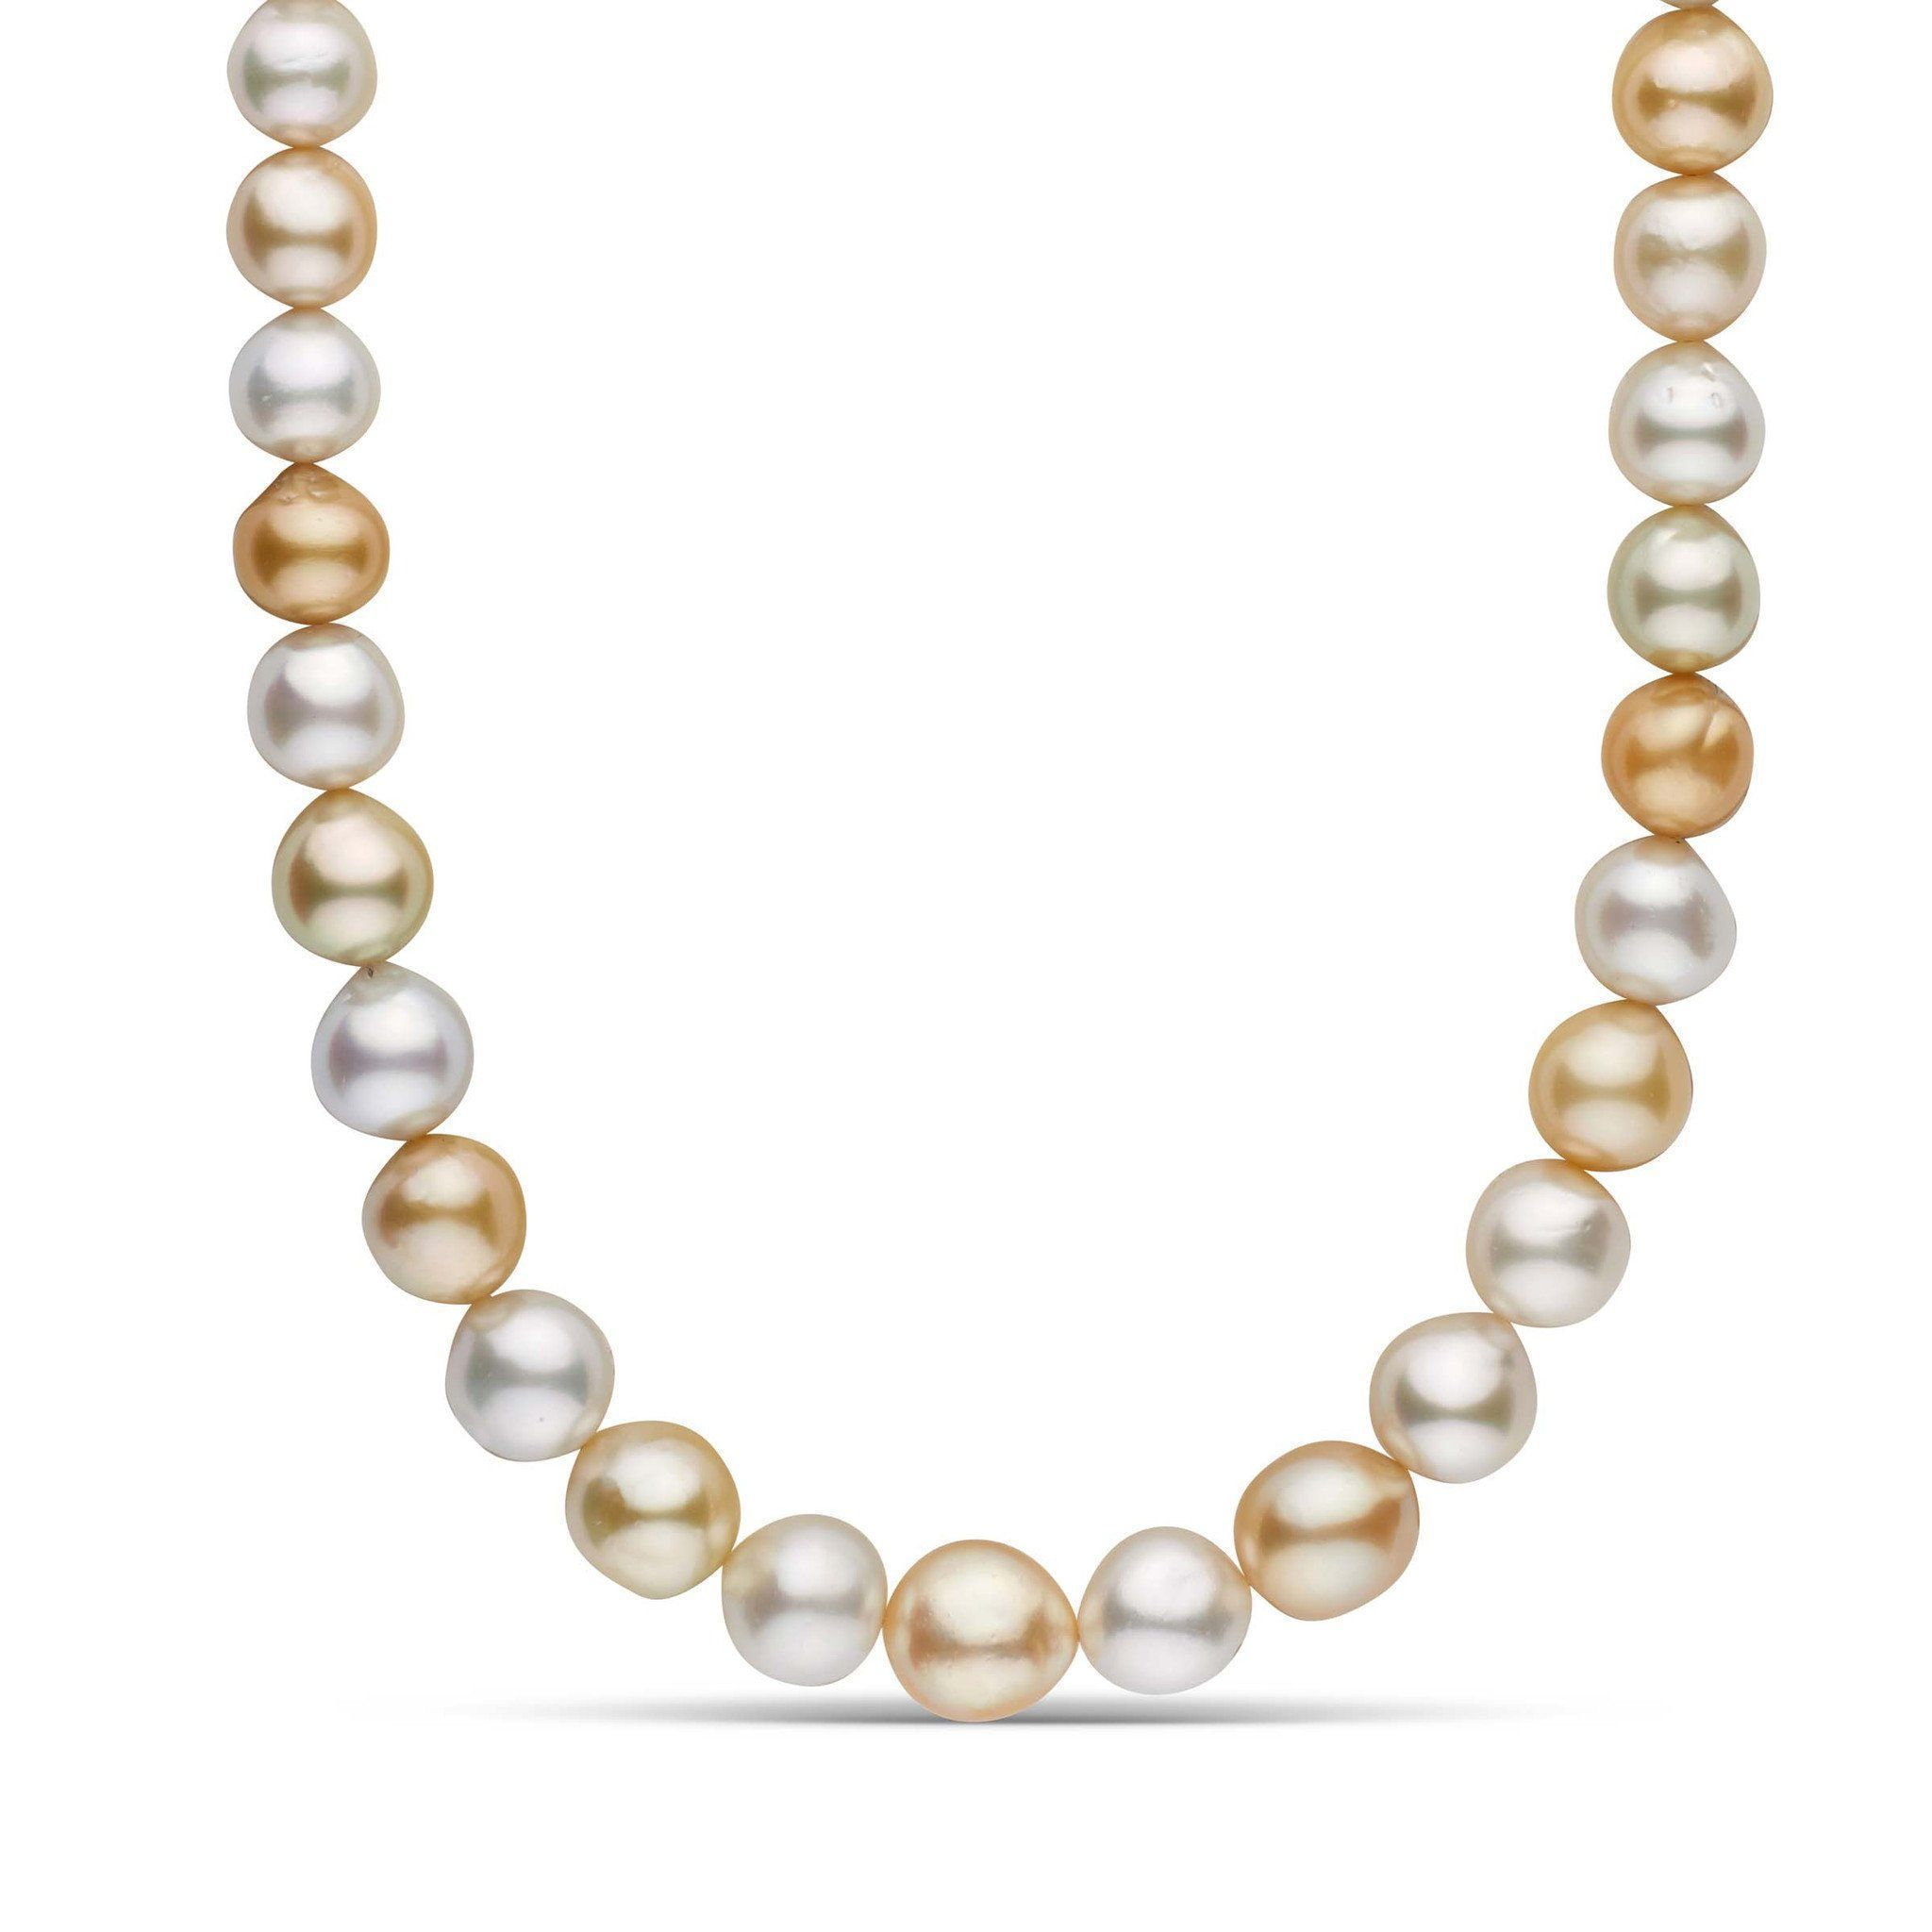 12.4-15.5 mm AA+/AAA Drop Multicolor South Sea Pearl Necklace